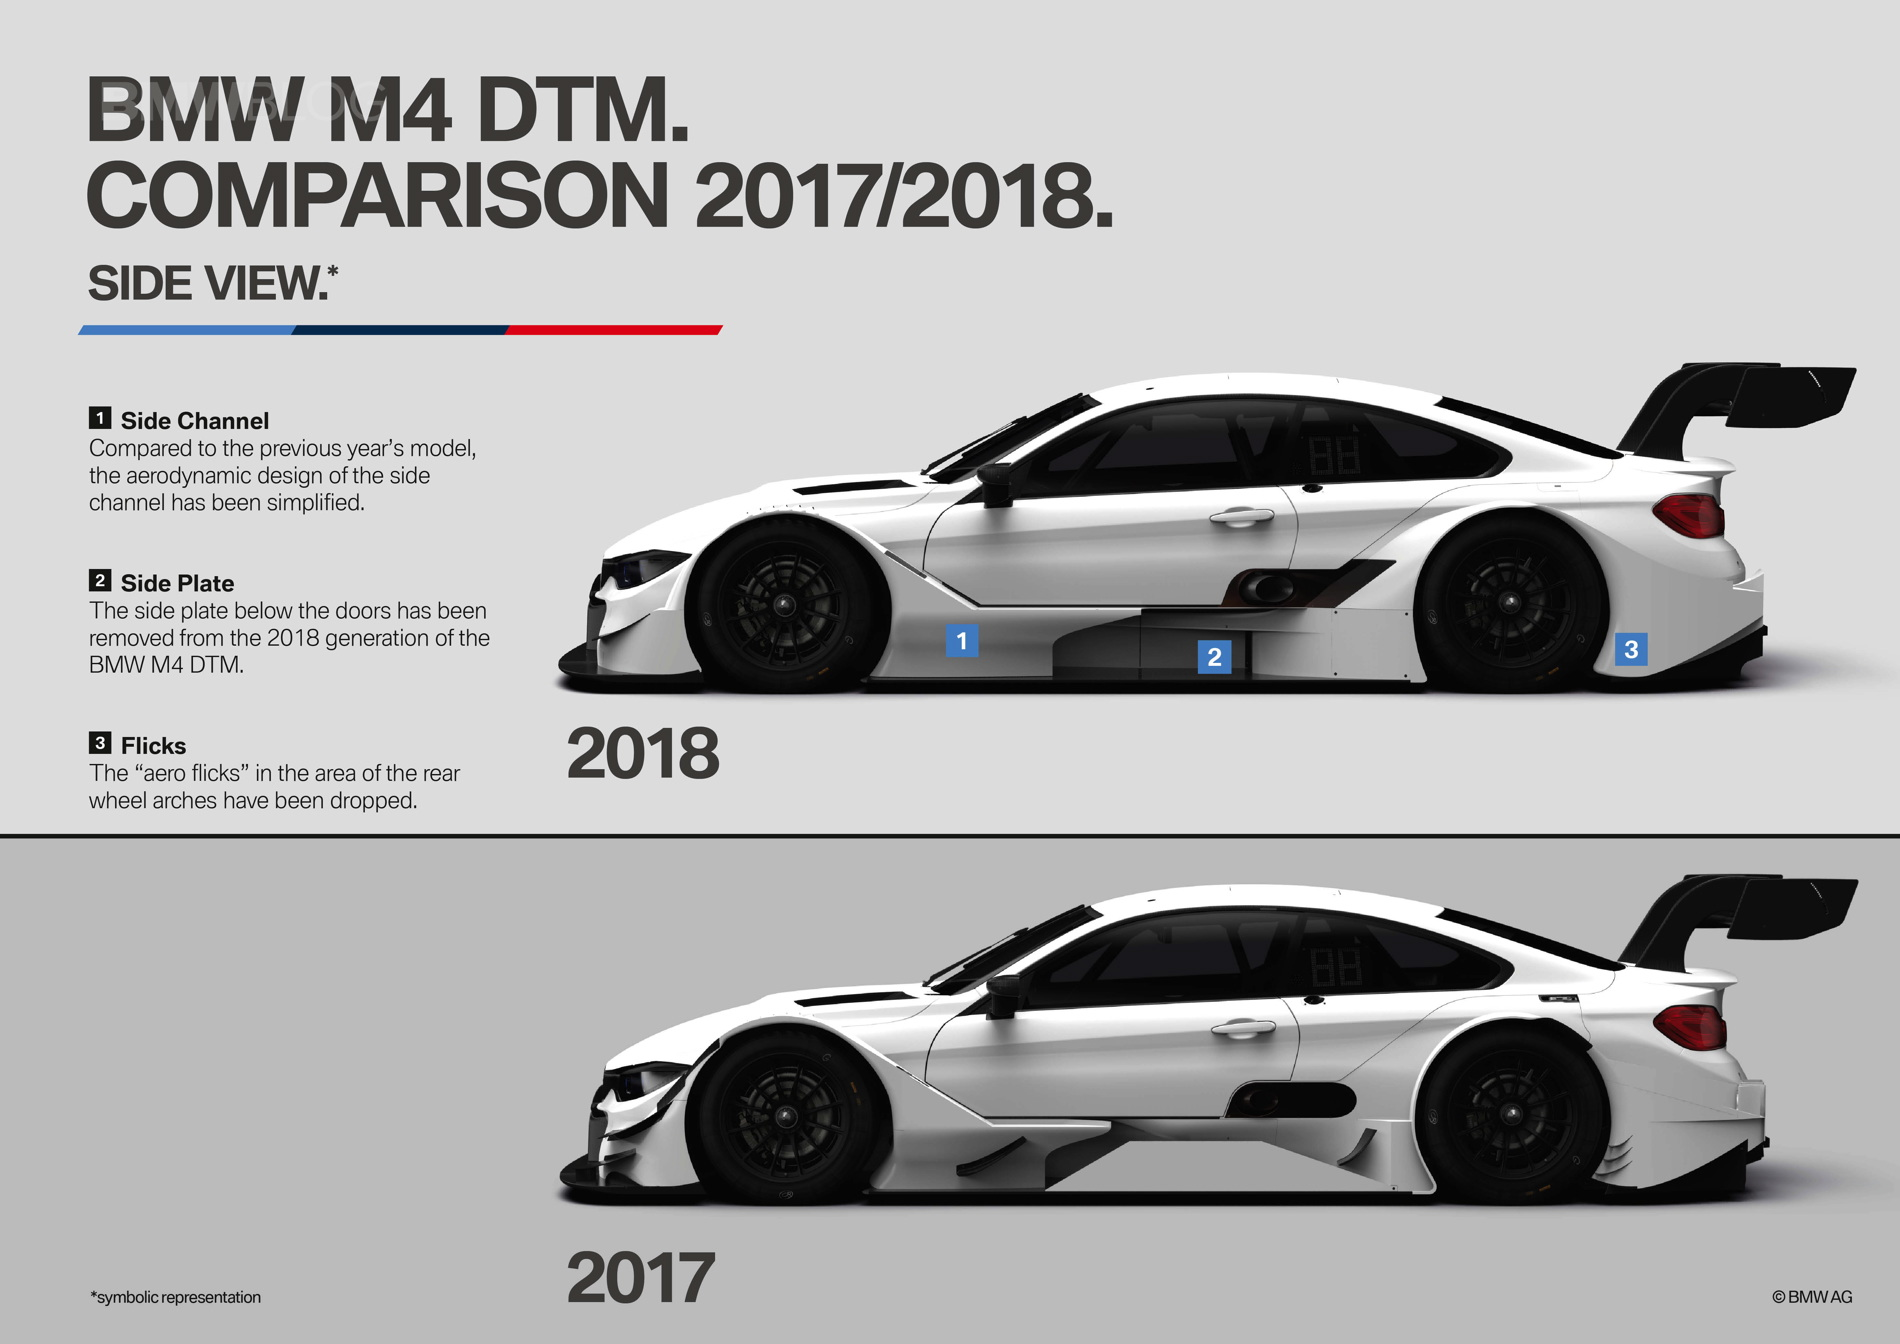 Bmw Updates The M4 Dtm Racing Car For The 2018 Season